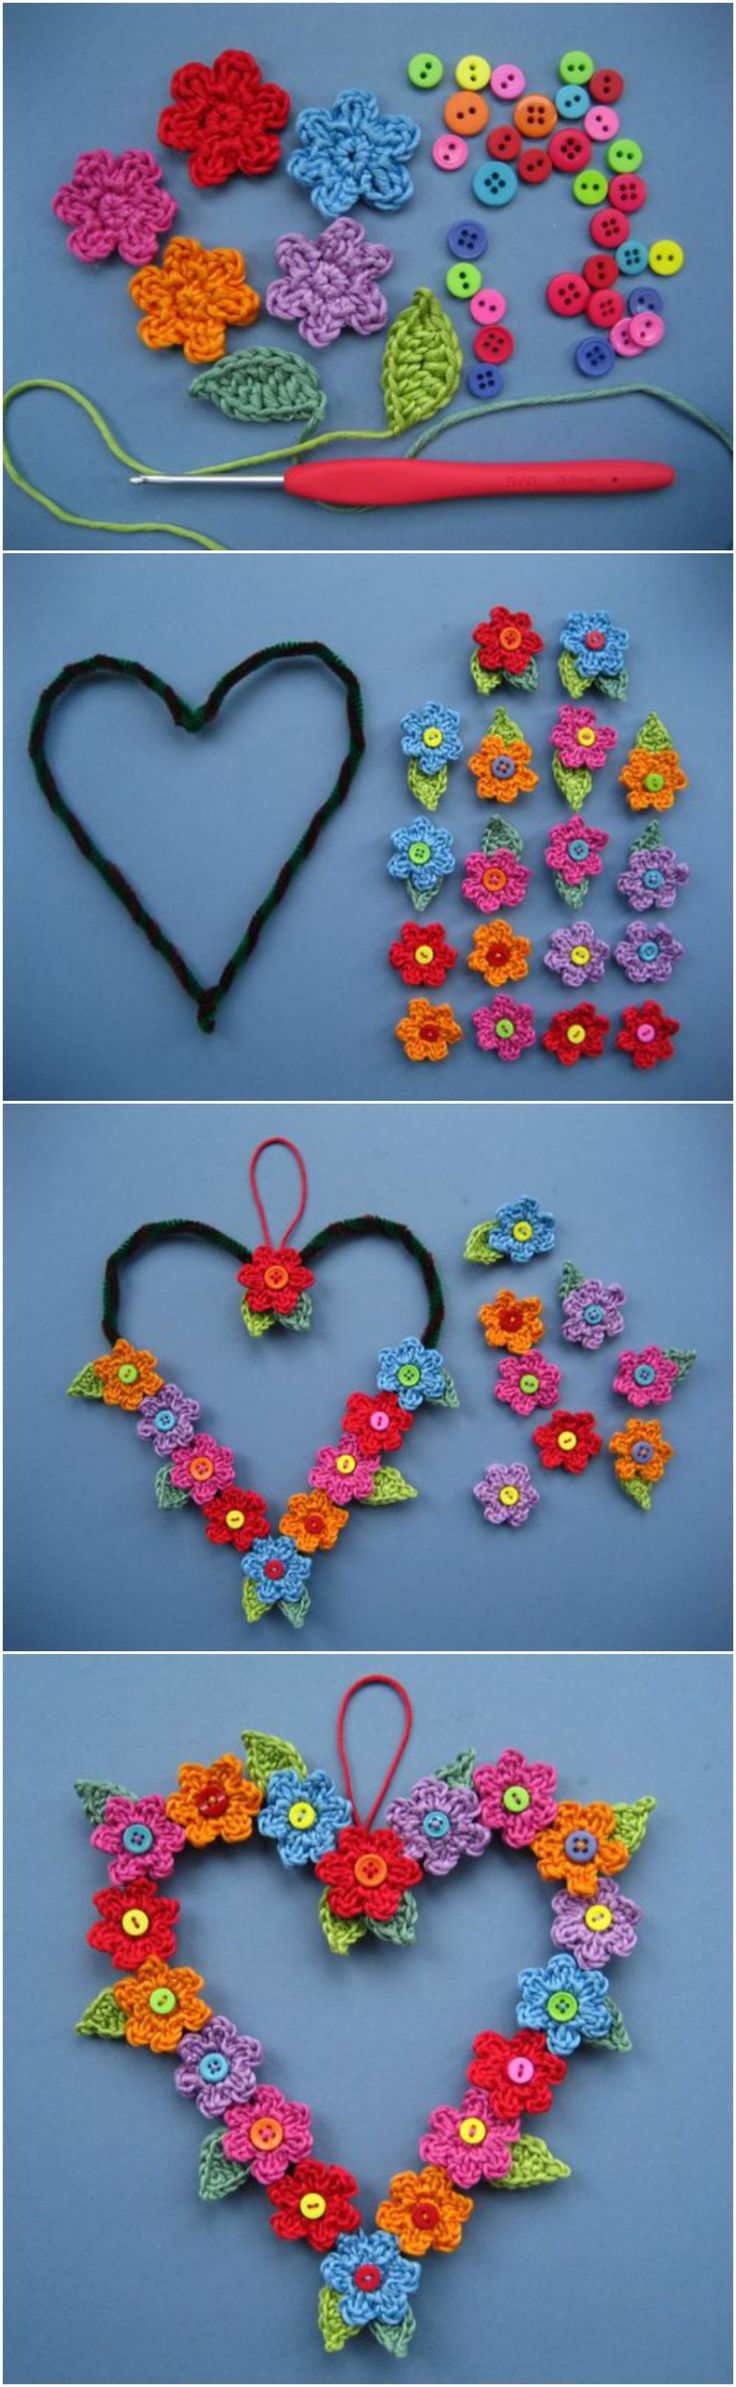 How to Crochet Wreaths